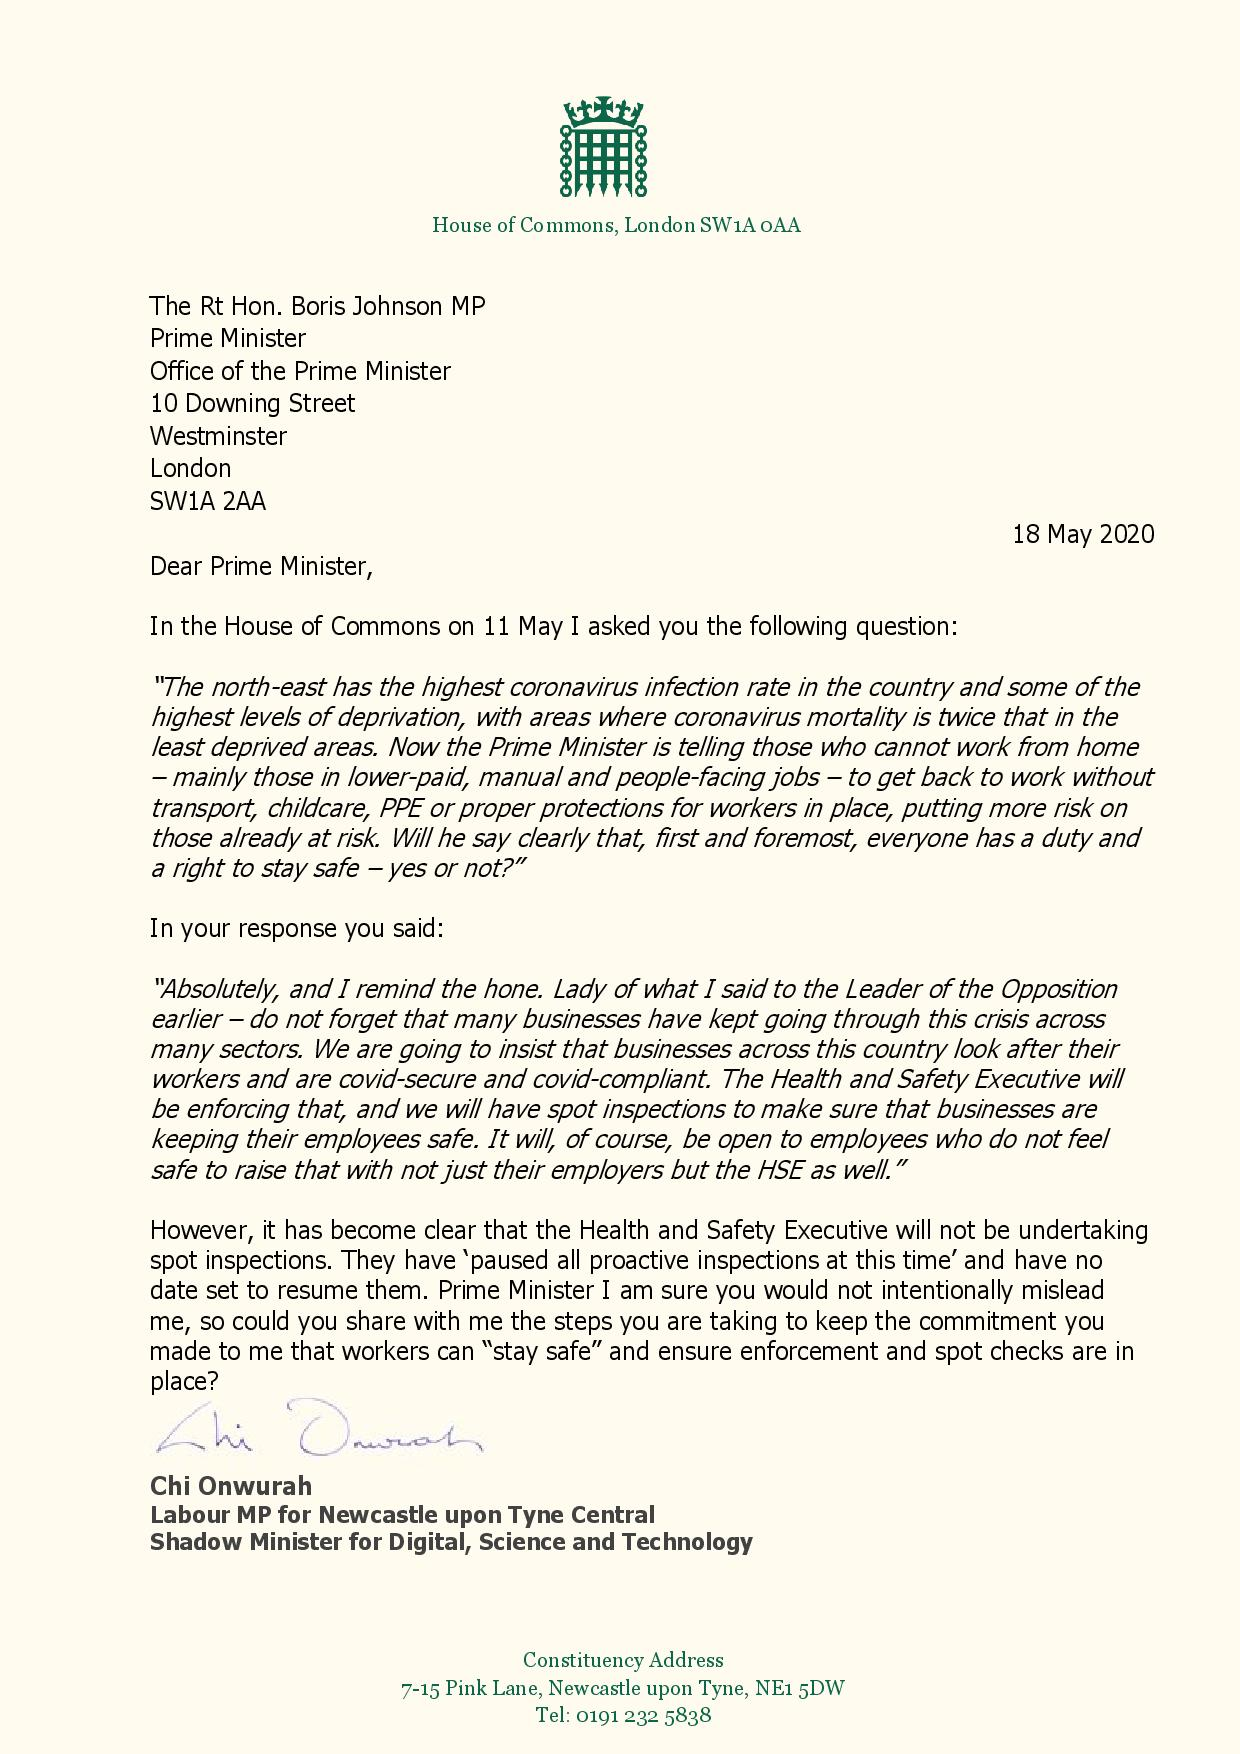 Chi writes to the Prime Minister to seek assurances over Health and Safety Executive spot checks.